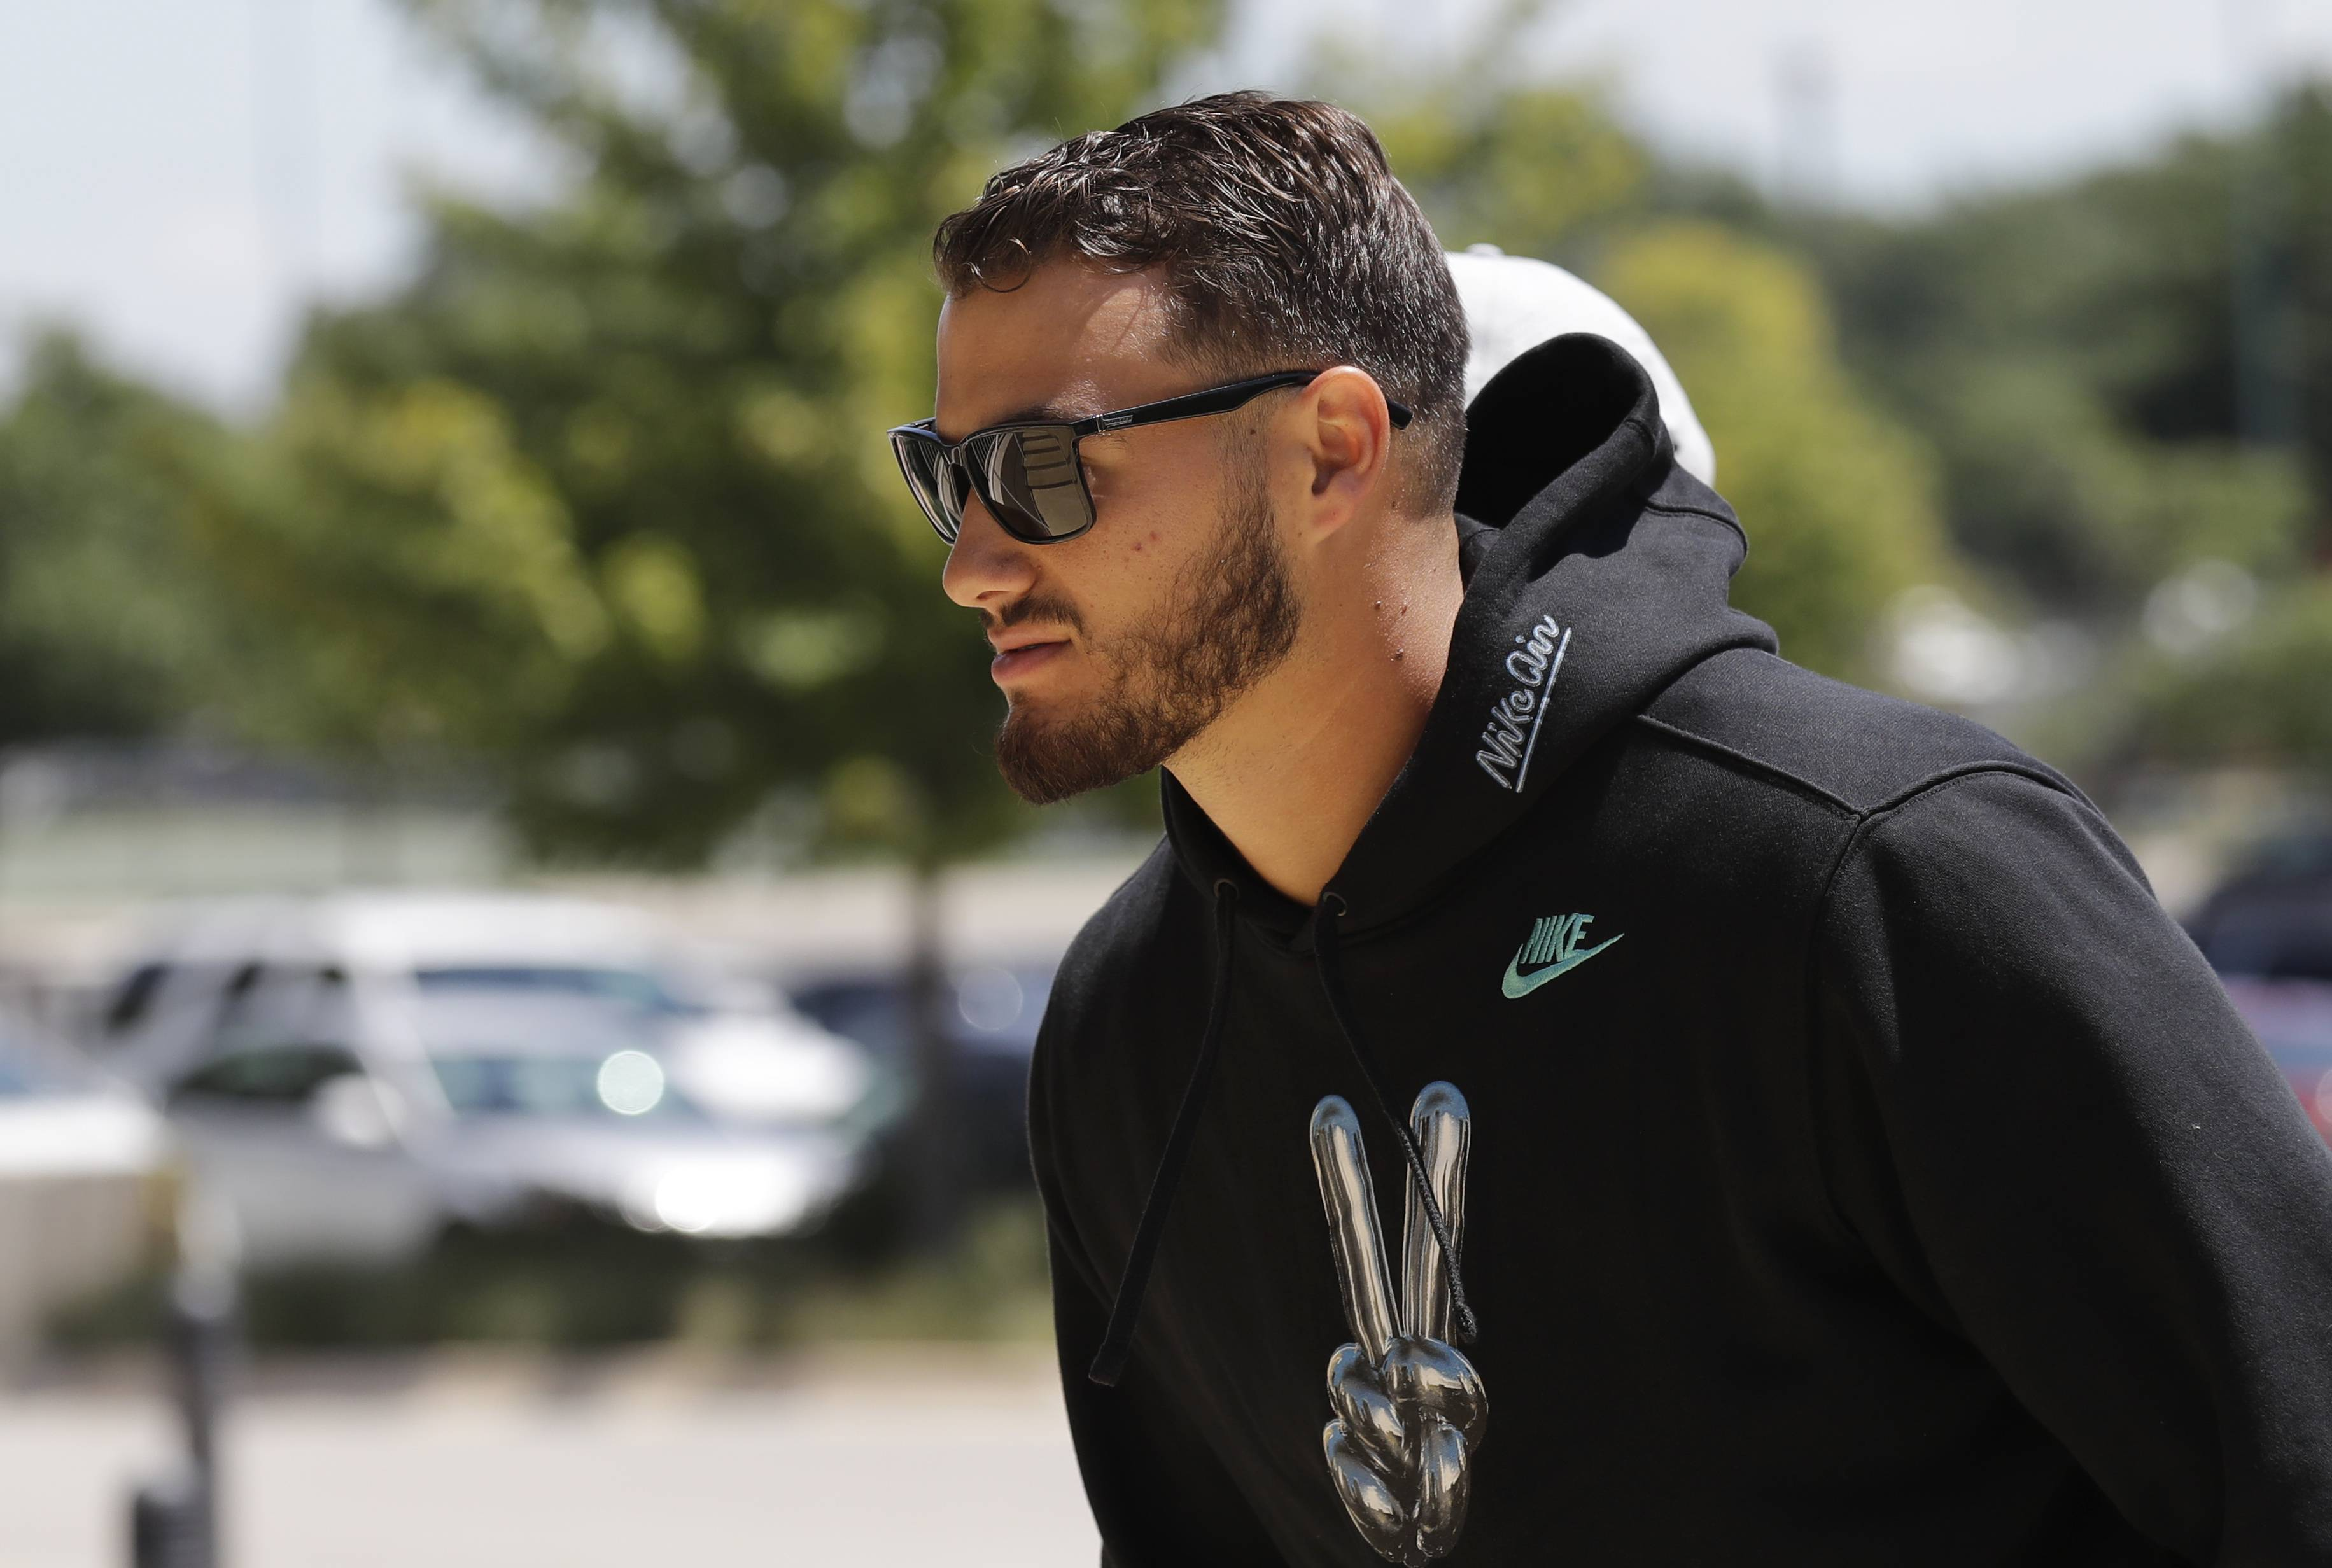 Bears QB Mitch Trubisky has blinders on as he heads into his second training camp, and his first as the starter. Trubisky's tunnel vision is a good sign because he's blocking out all outside distractions so as to have a laser-like focus on his job as the Bears' franchise quarterback